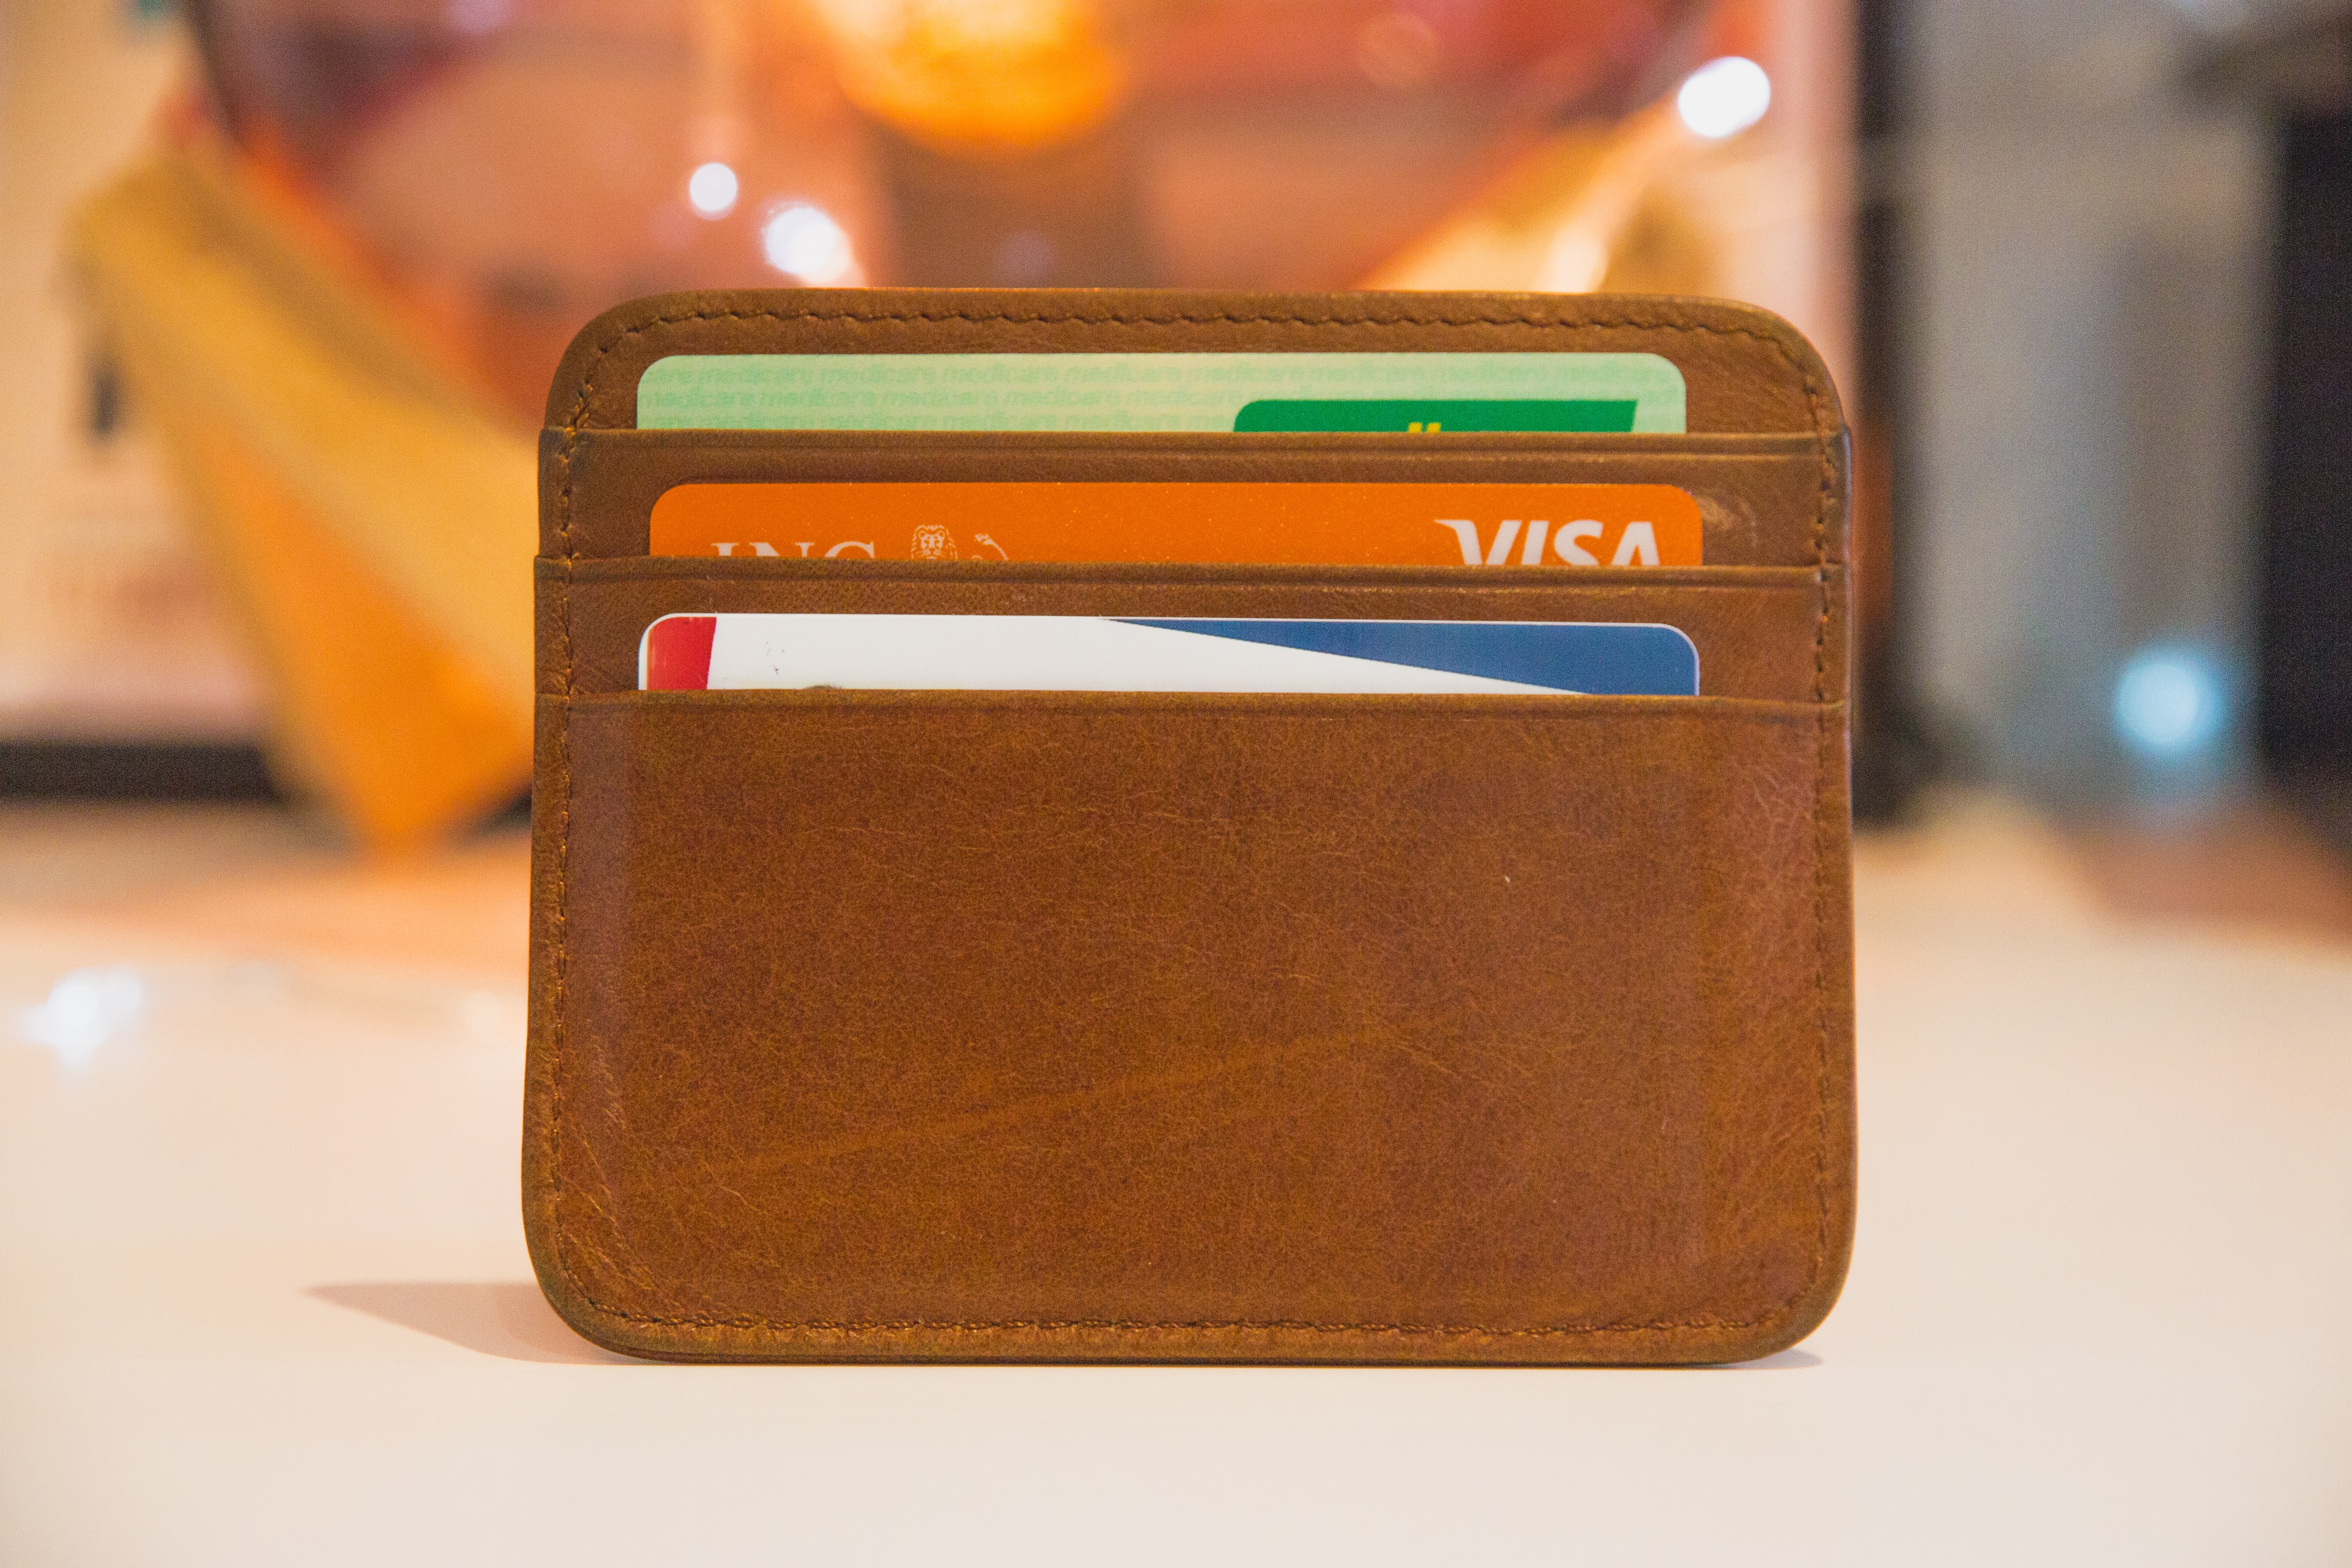 Demand for physical gift cards is rising – a sign for gift card market recovery?